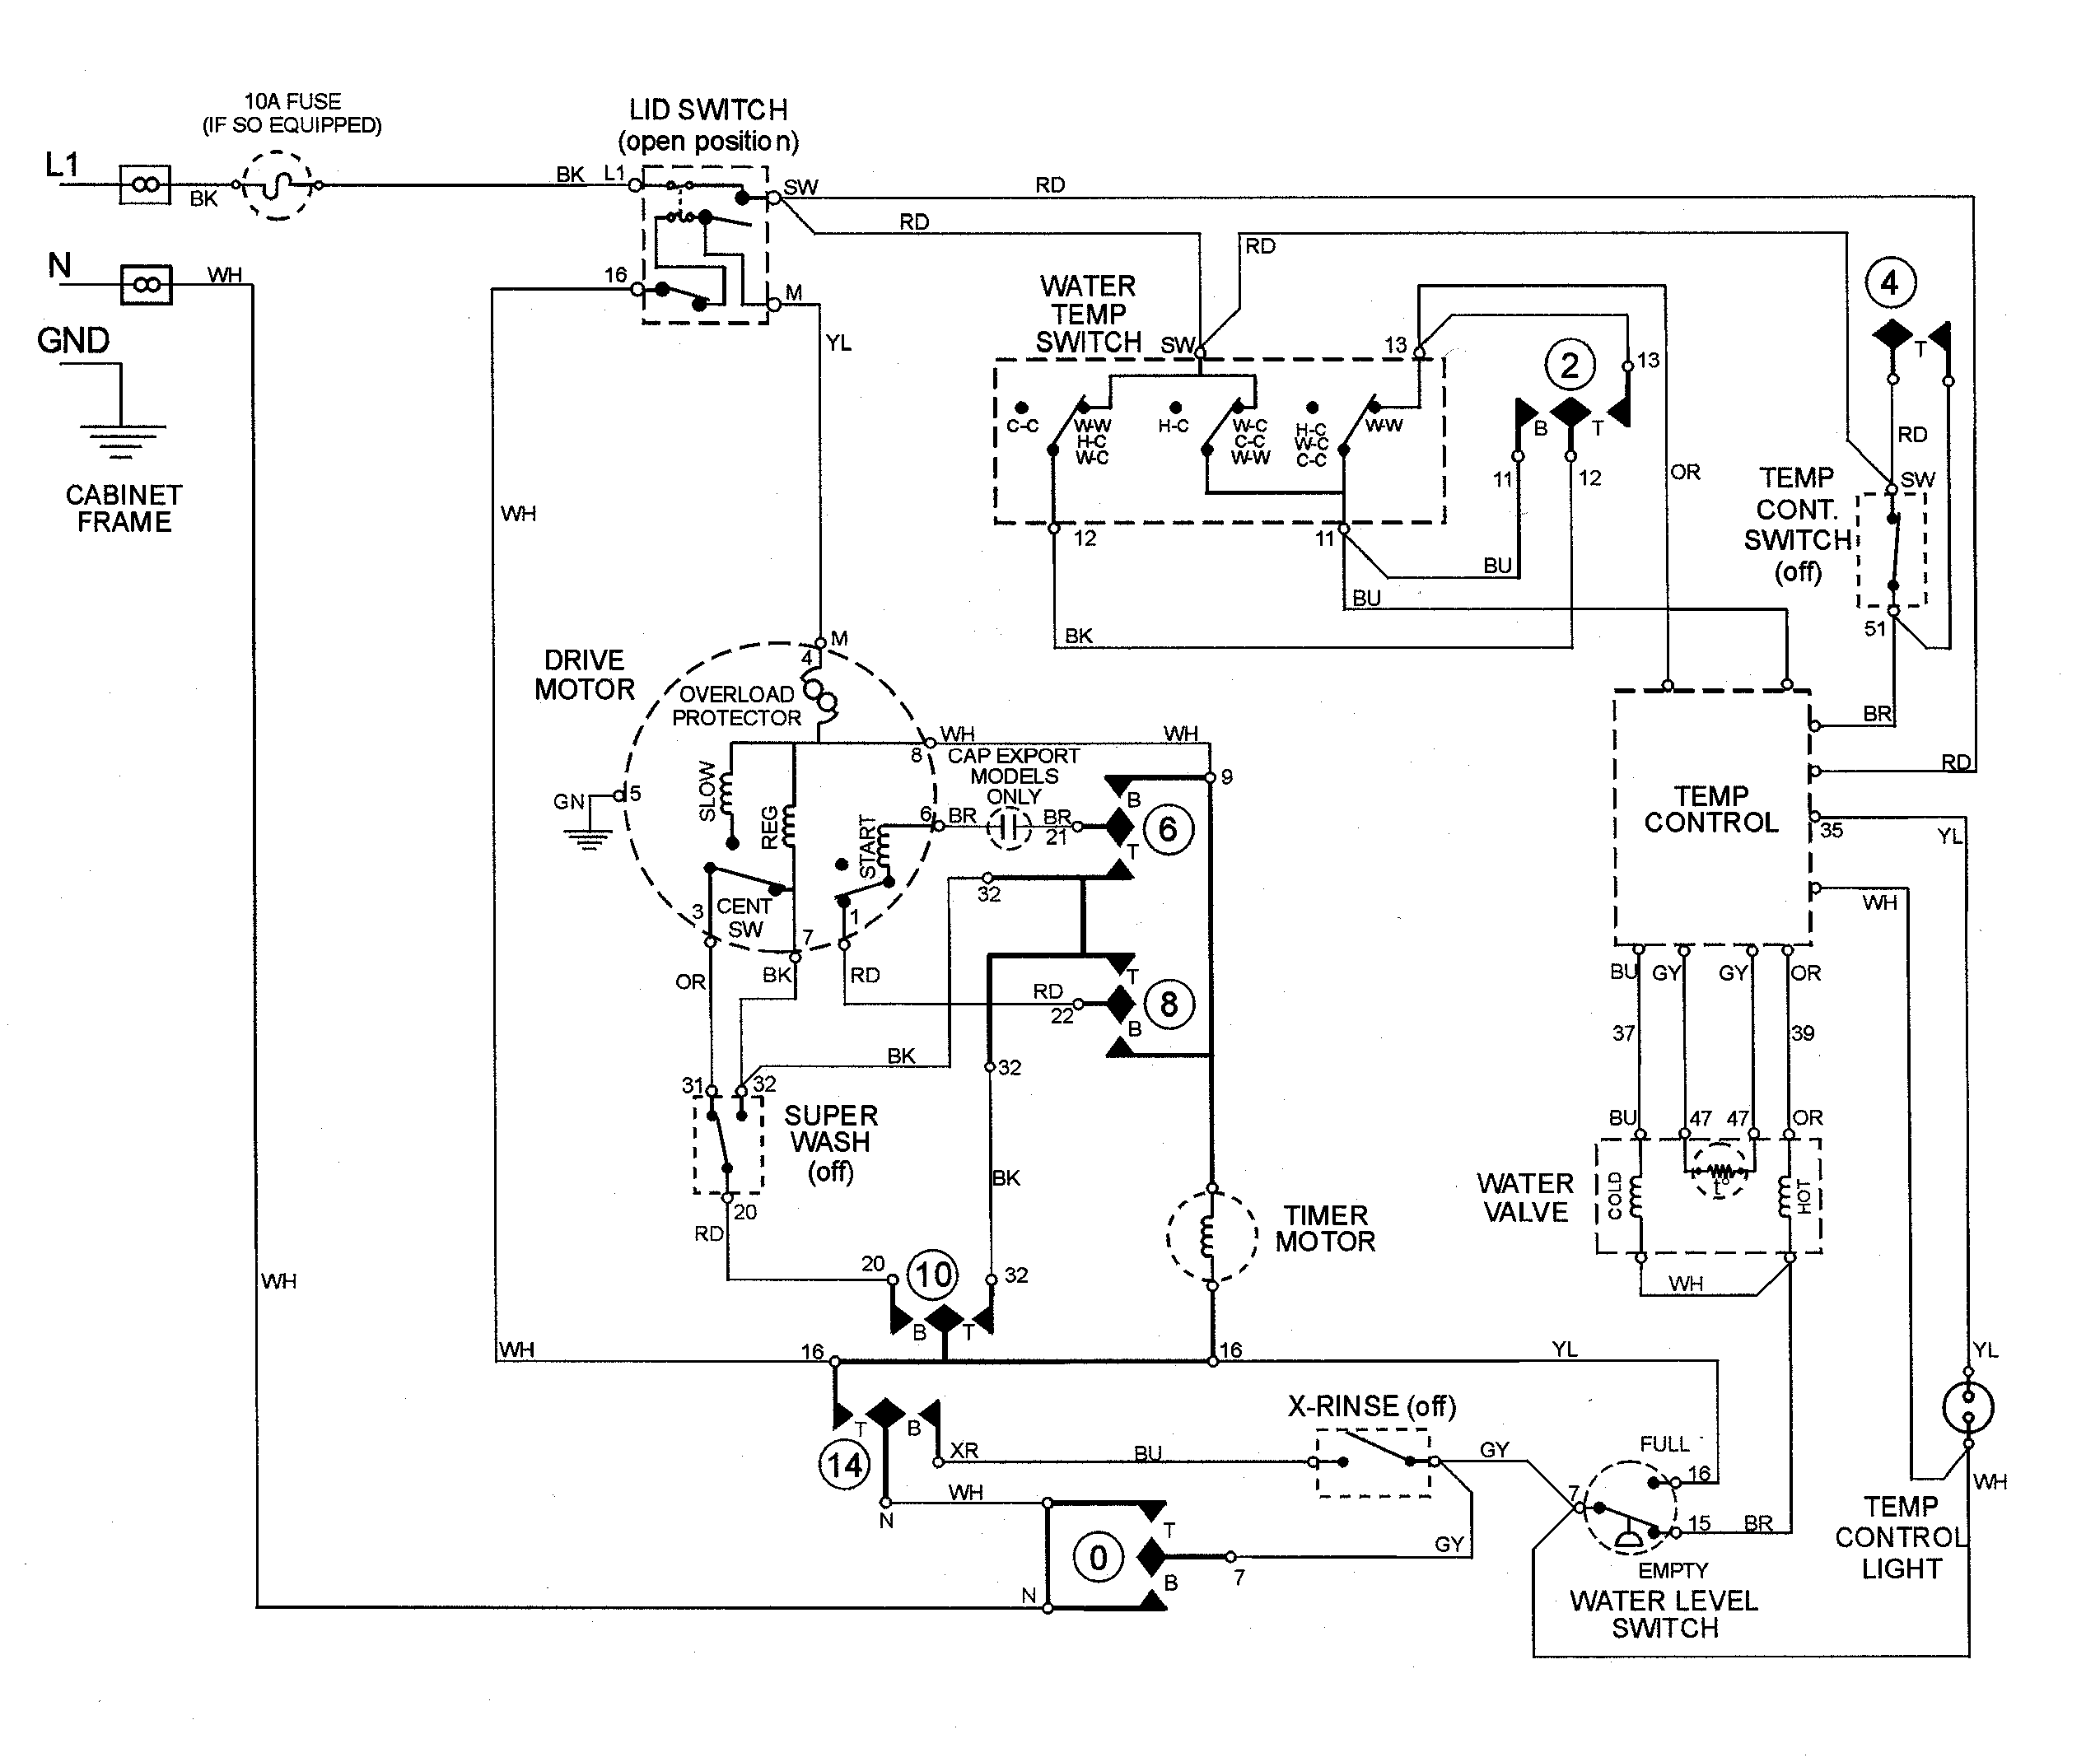 ge electric schematic wiring diagram schematics navien wiring diagrams ge  electric wiring diagram wiring diagram schematics